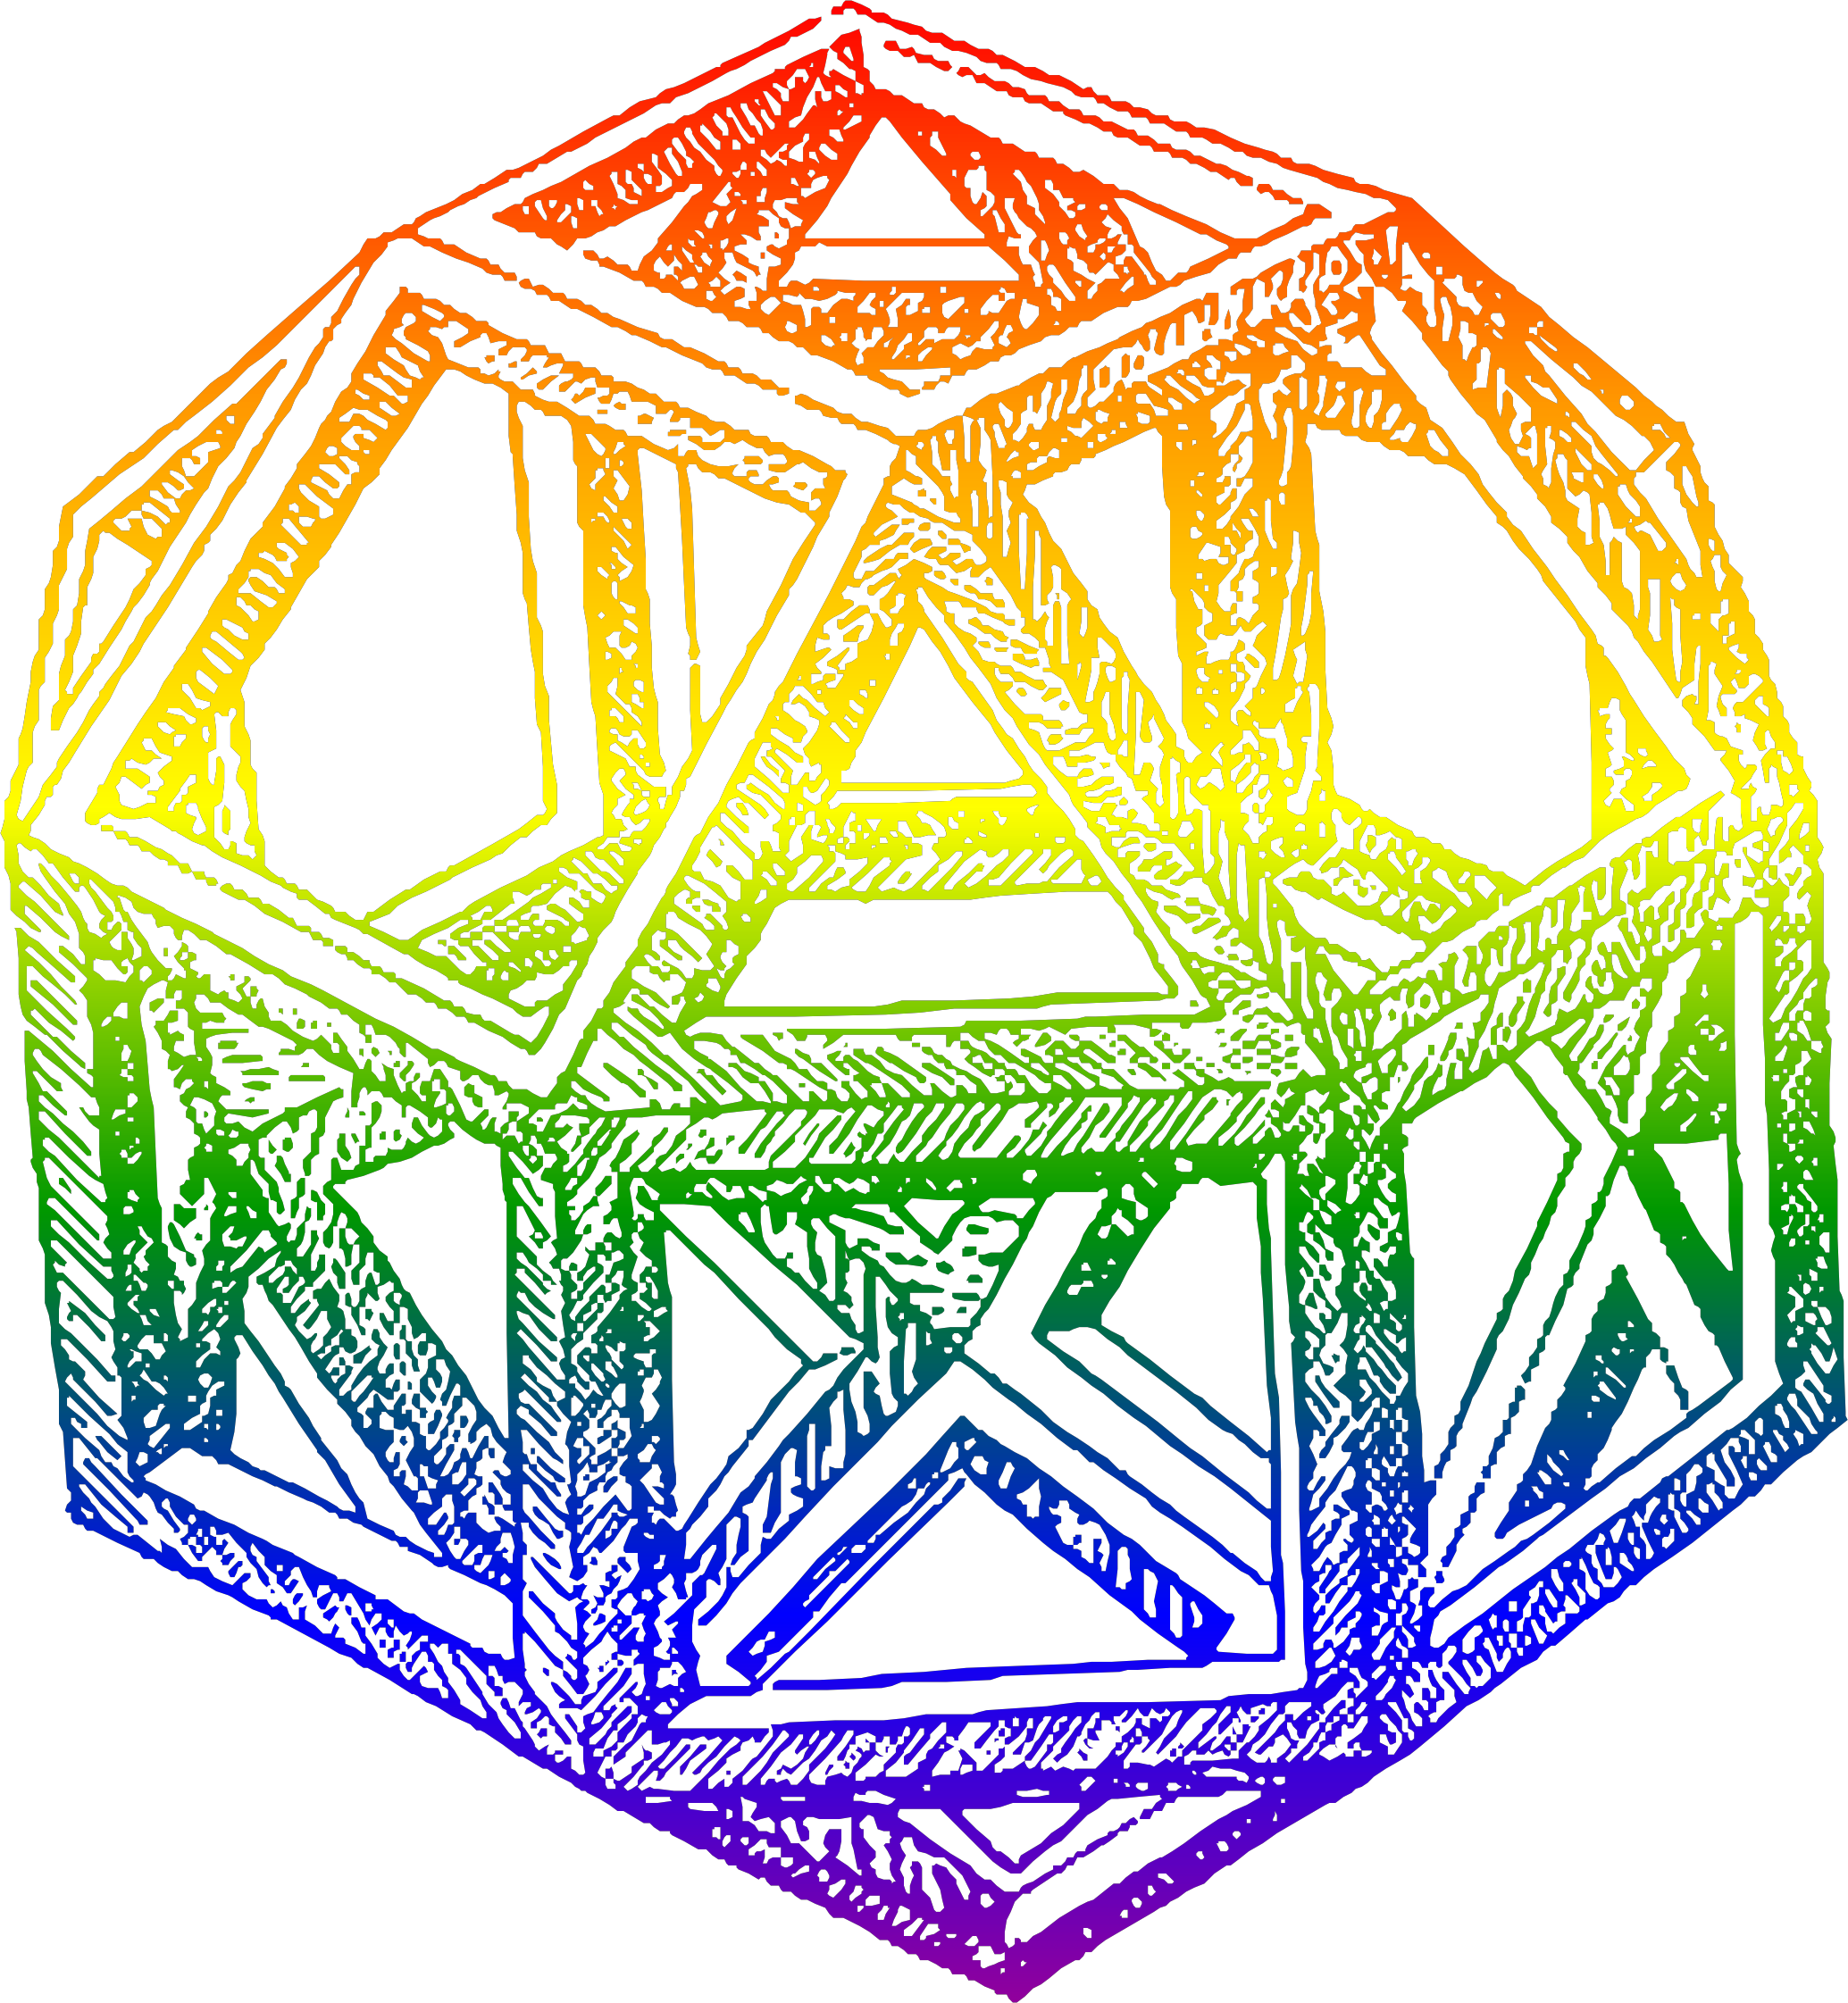 Rhombicuboctahedron, by Leonardo da Vinci, in a Blend of Rainbow Colors by AdamStanislav